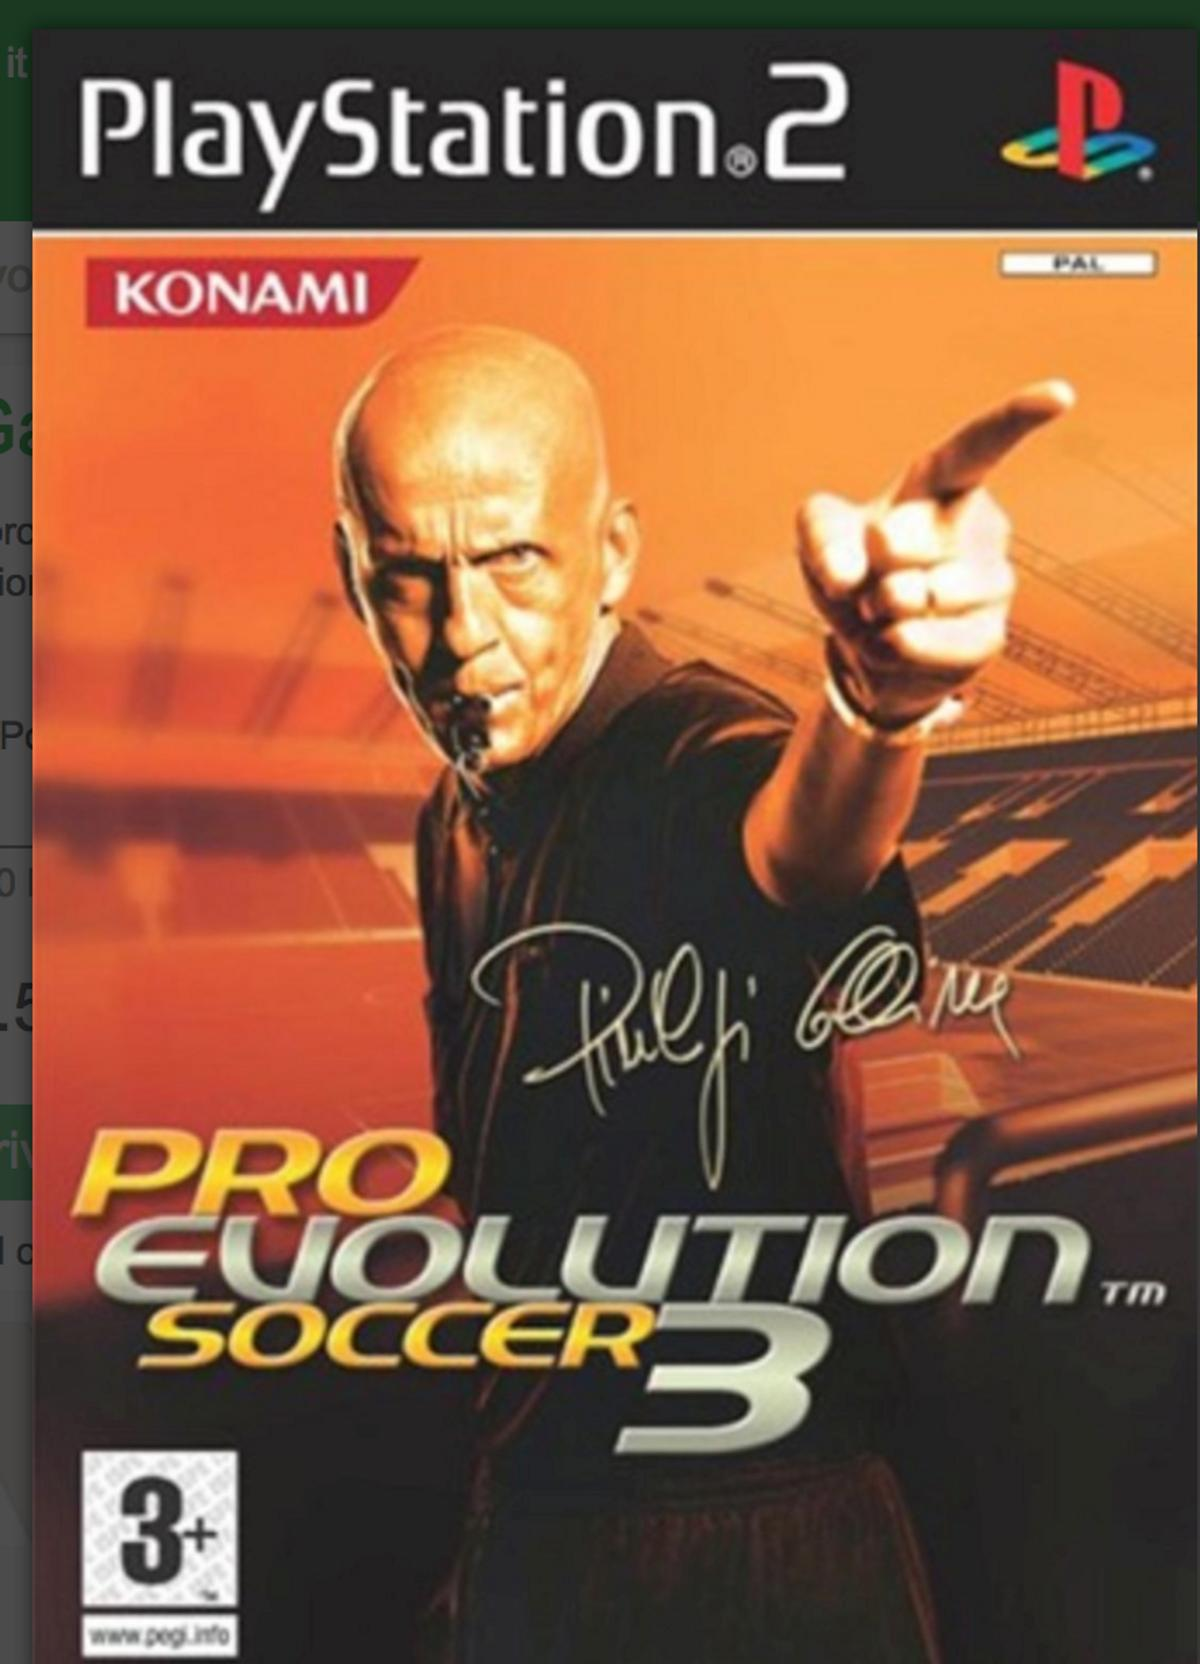 PS2 Game PES Collection *3